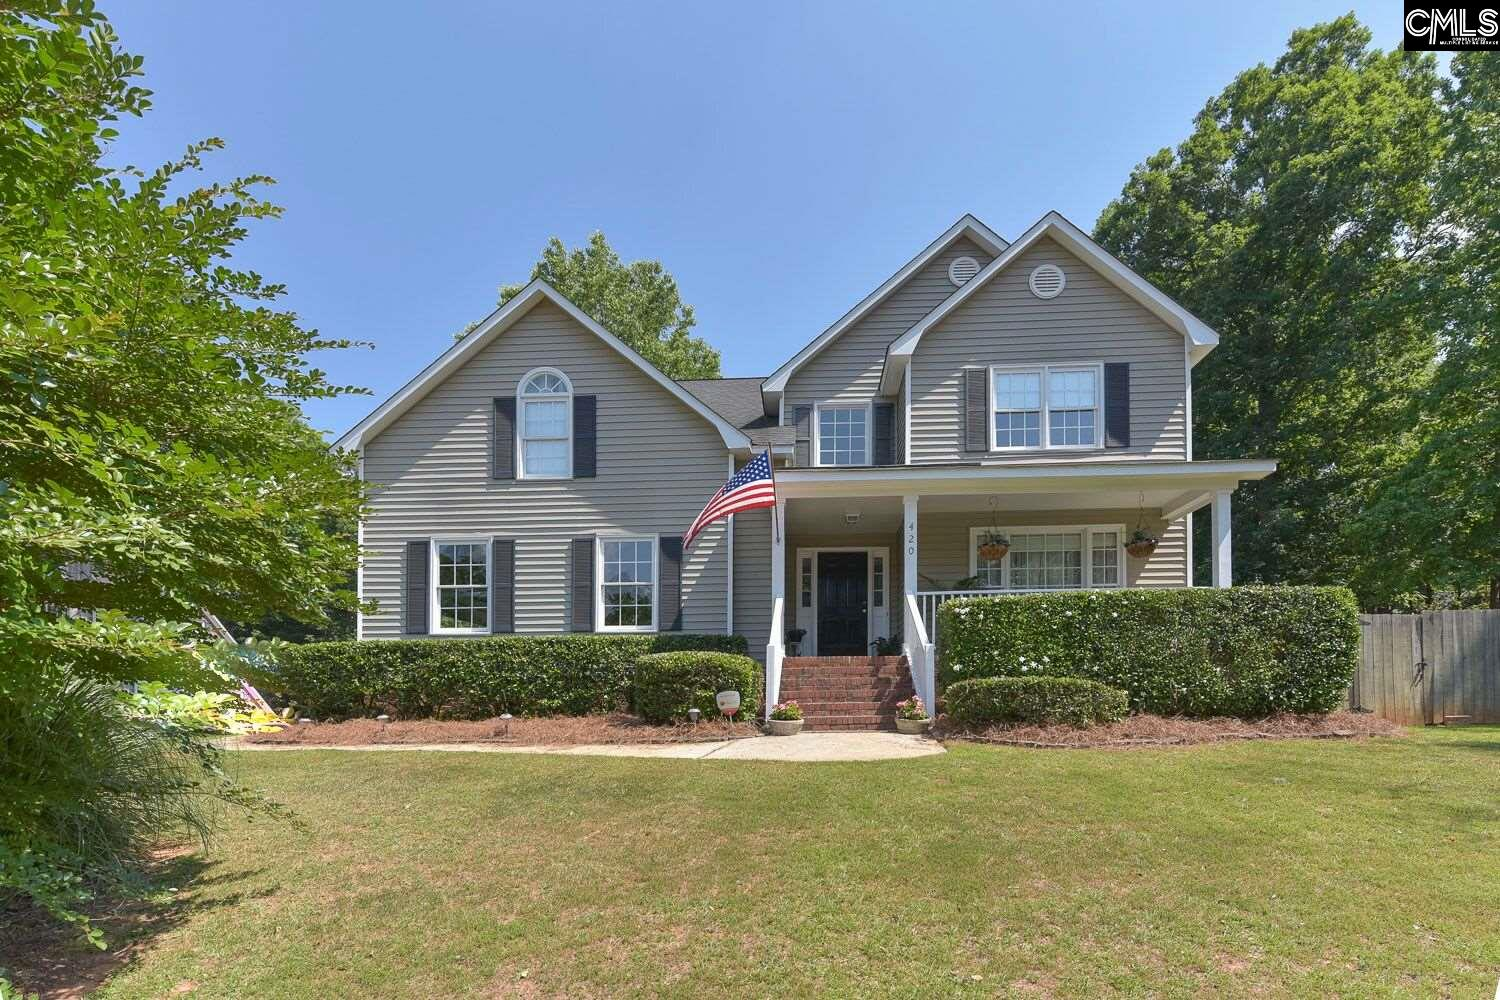 420 Plantation Lexington, SC 29072-7921